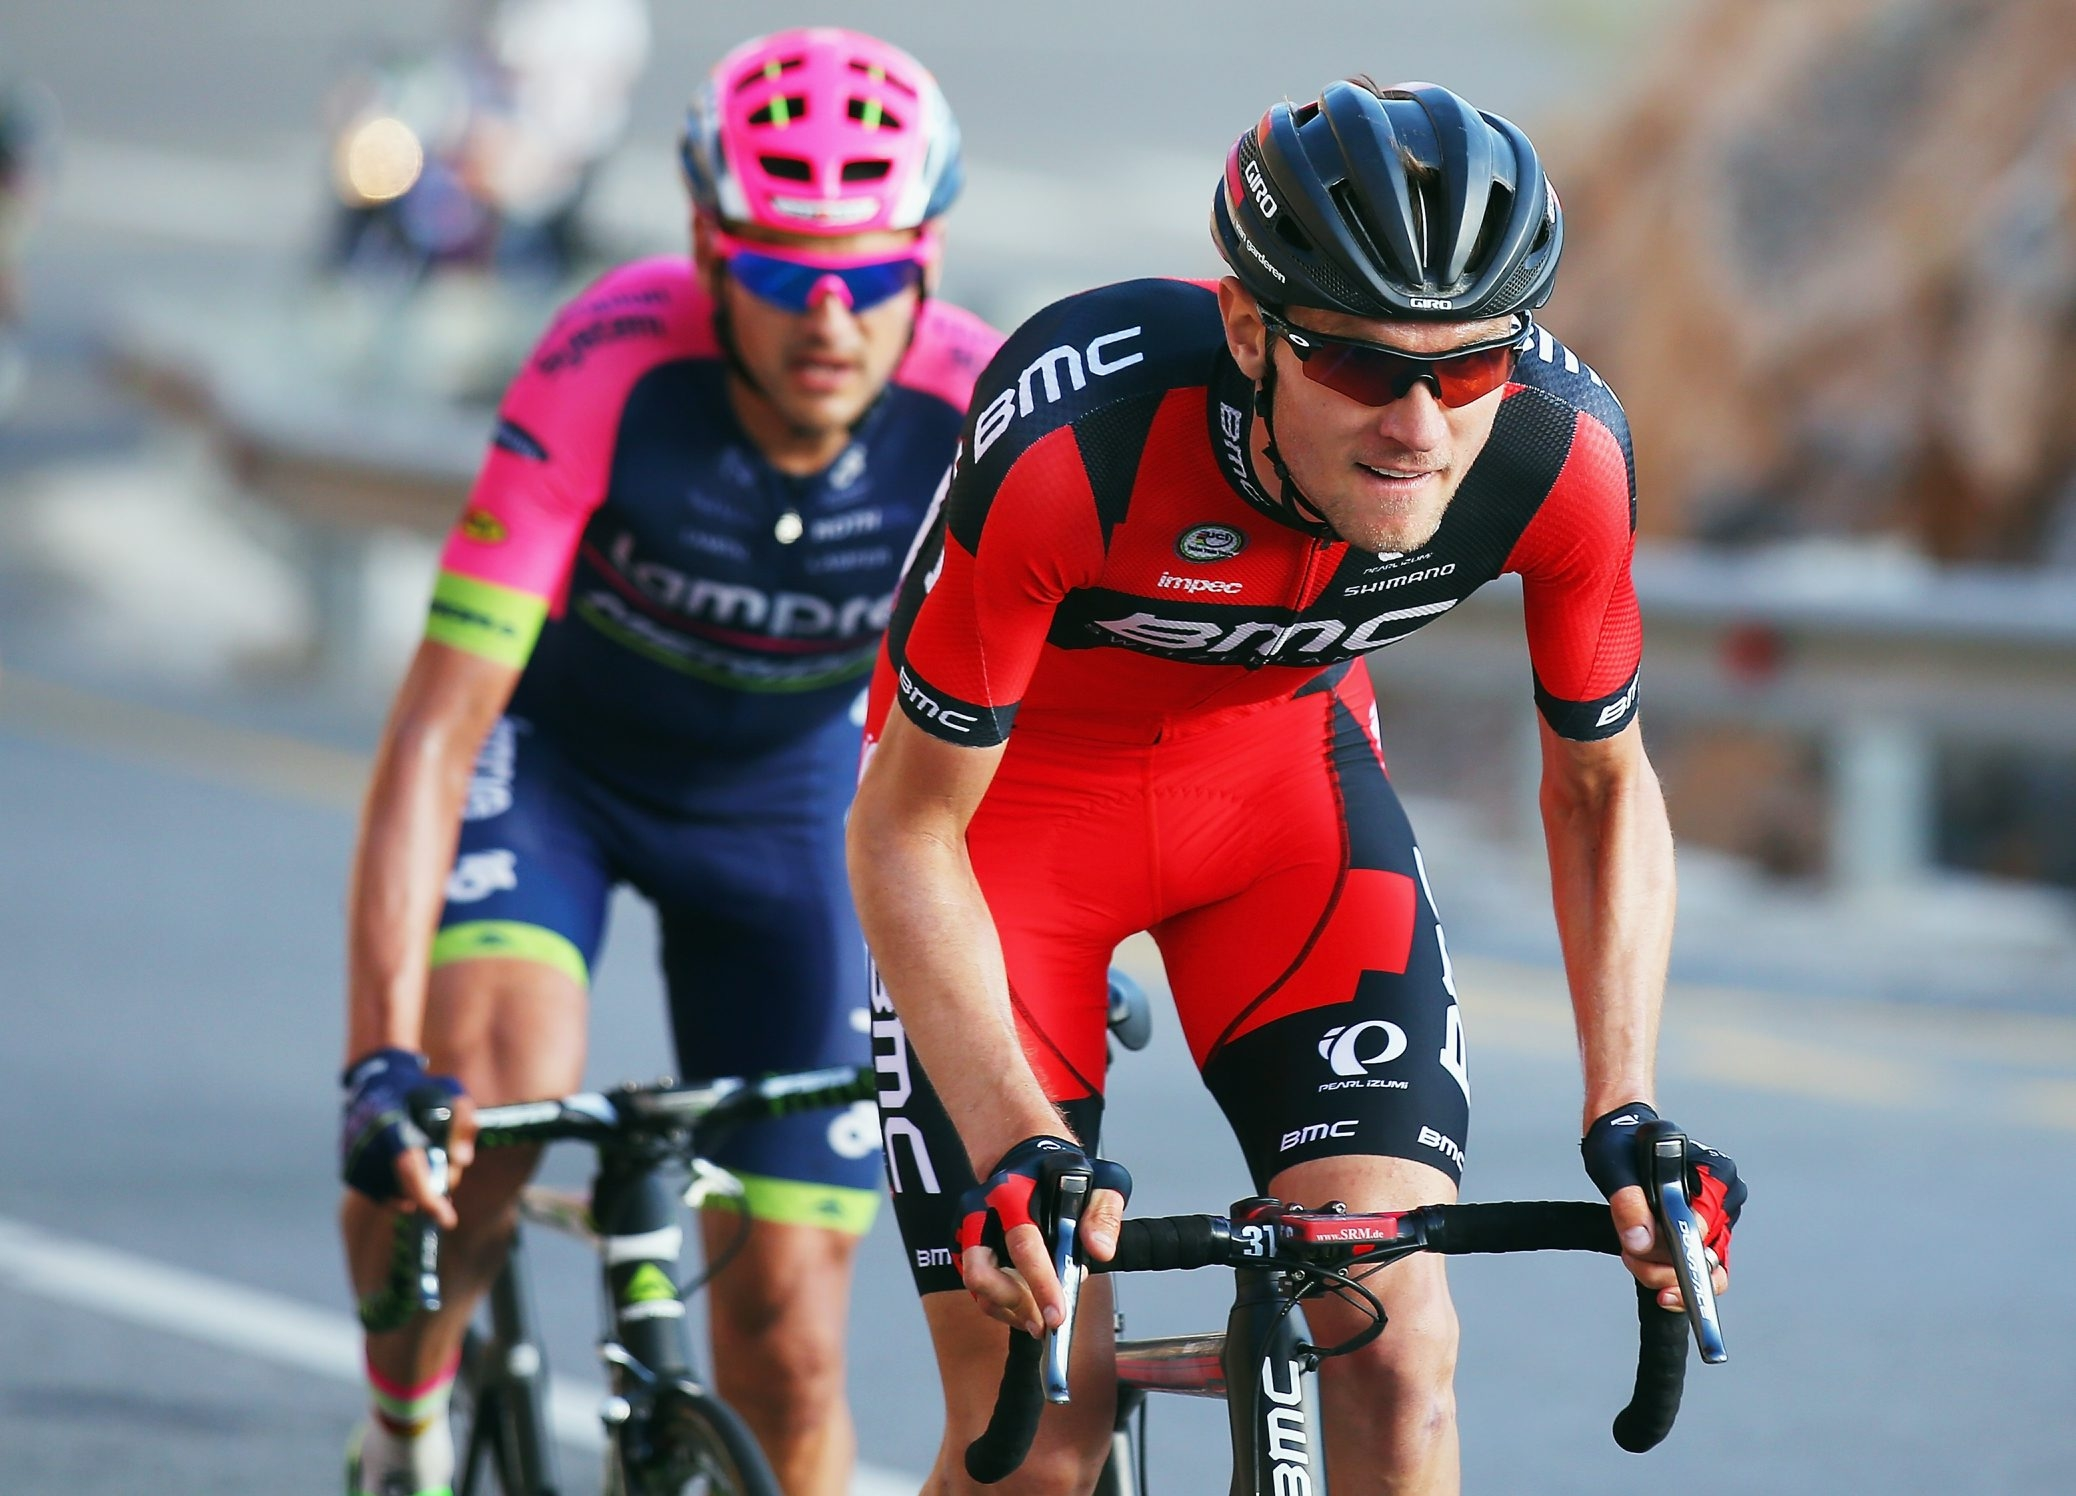 Tejay van Garderen is the United States' best hope in the upcoming Tour de France.